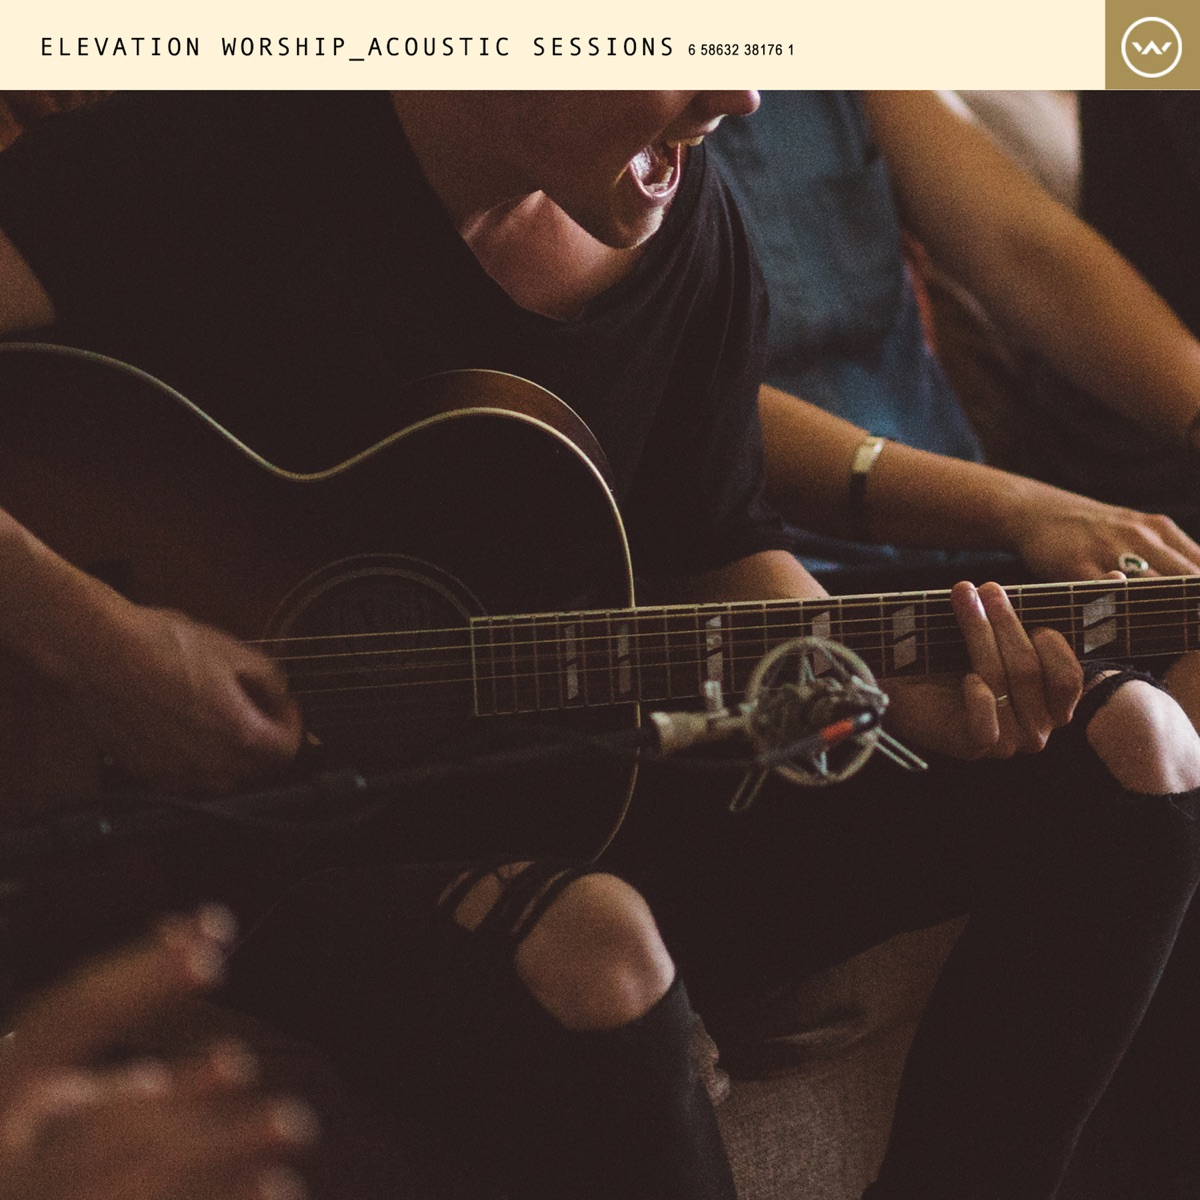 Acoustic Sessions Elevation Worship CD cover